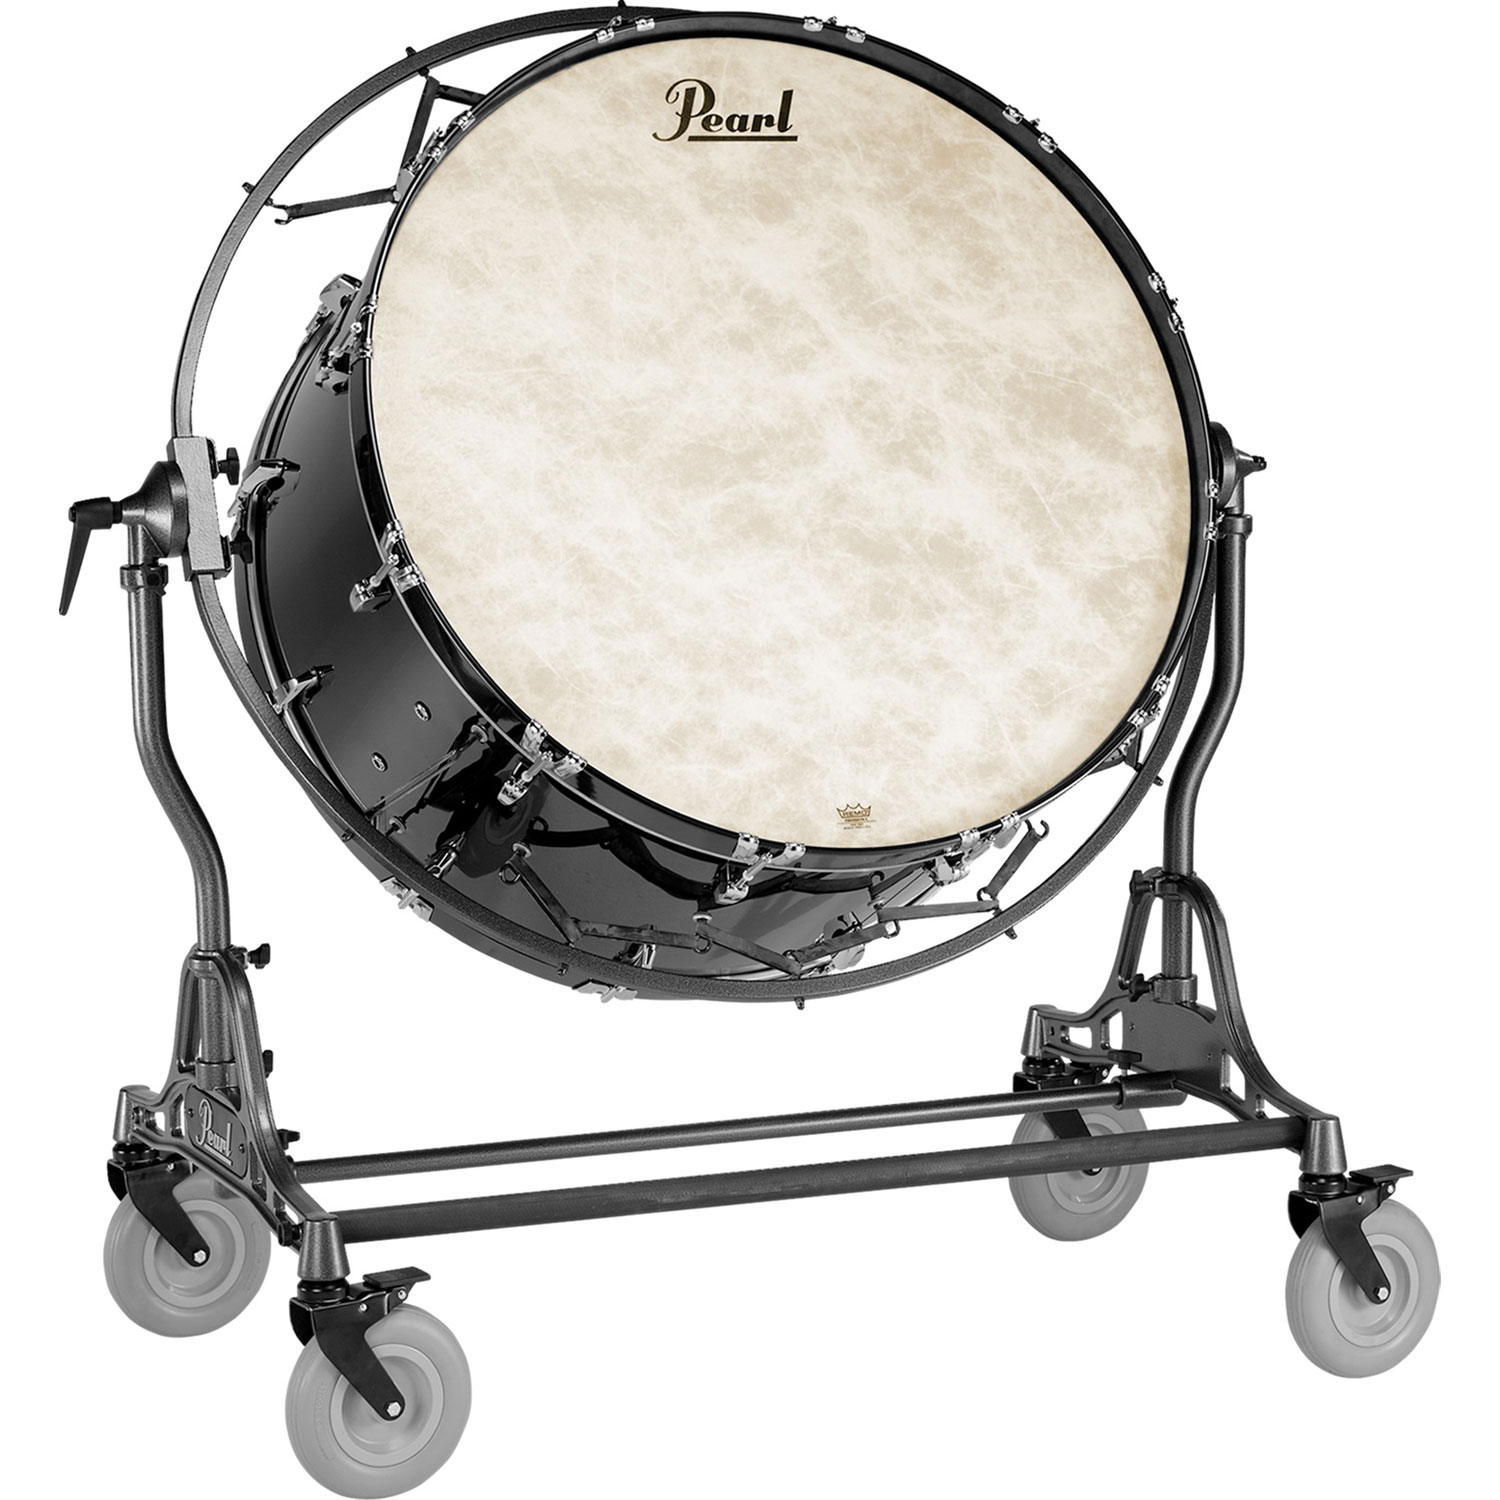 "Pearl 36"" (Diameter) x 18"" (Deep) Concert Series Kapur Concert Bass Drum with STBD Stand"